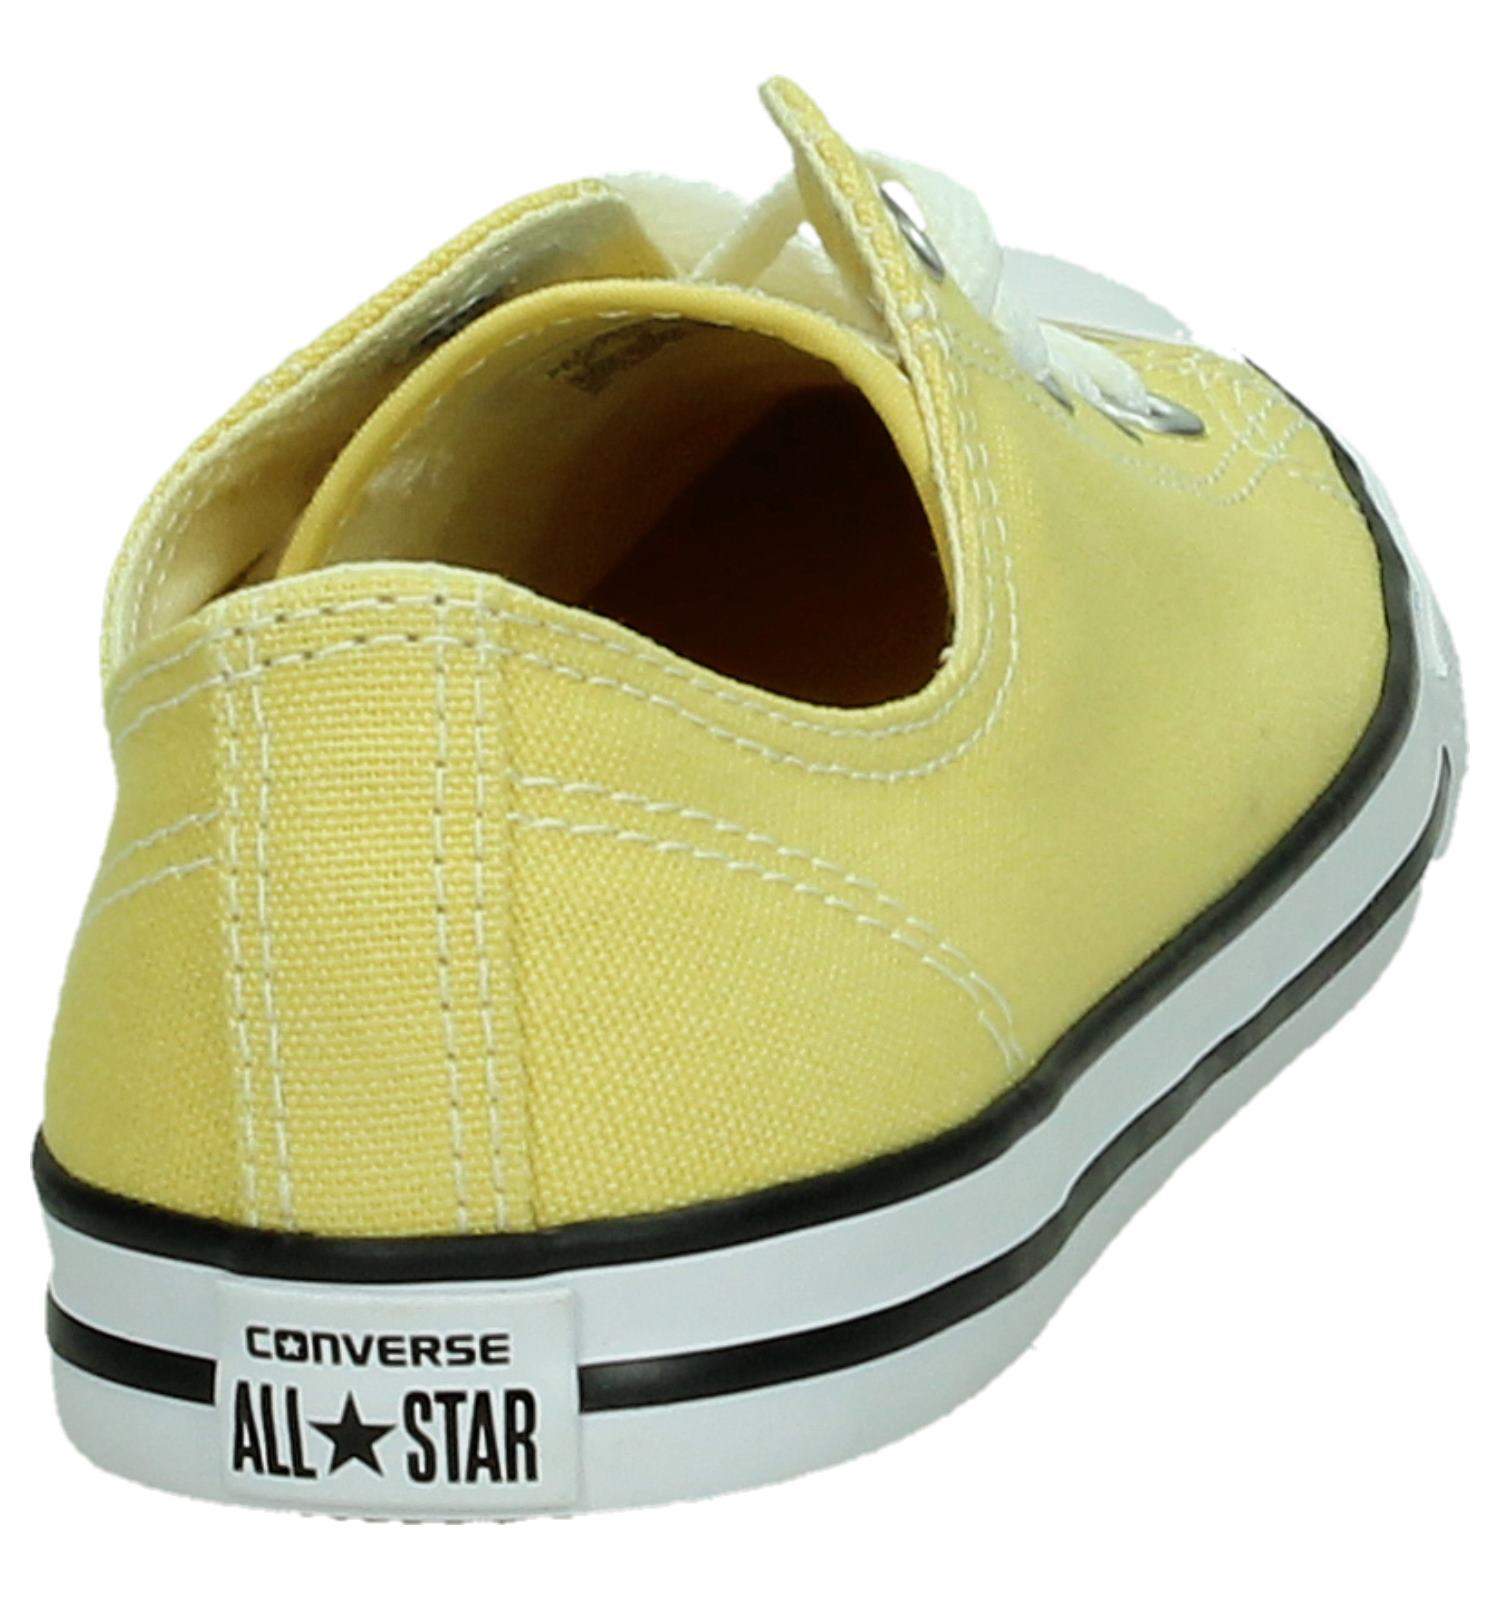 All Gratis Star Dainty Sneakers Ct be Geel Converse Torfs 4qfwpv1x